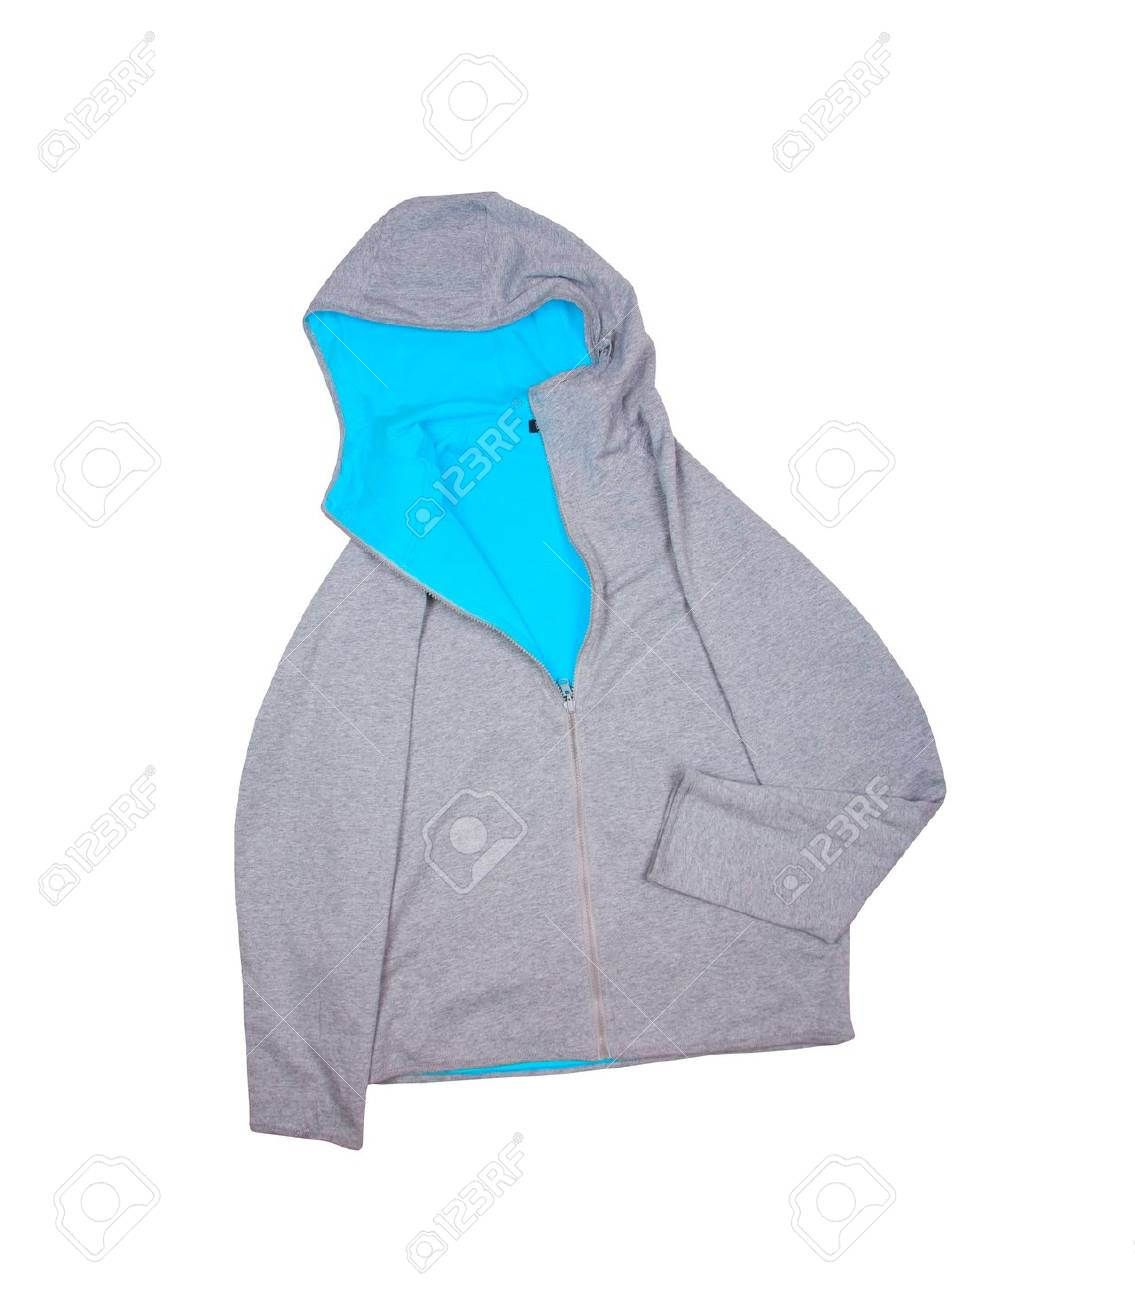 gray sweatshirt with hooded isolated on white background Stock Photo - 20145409